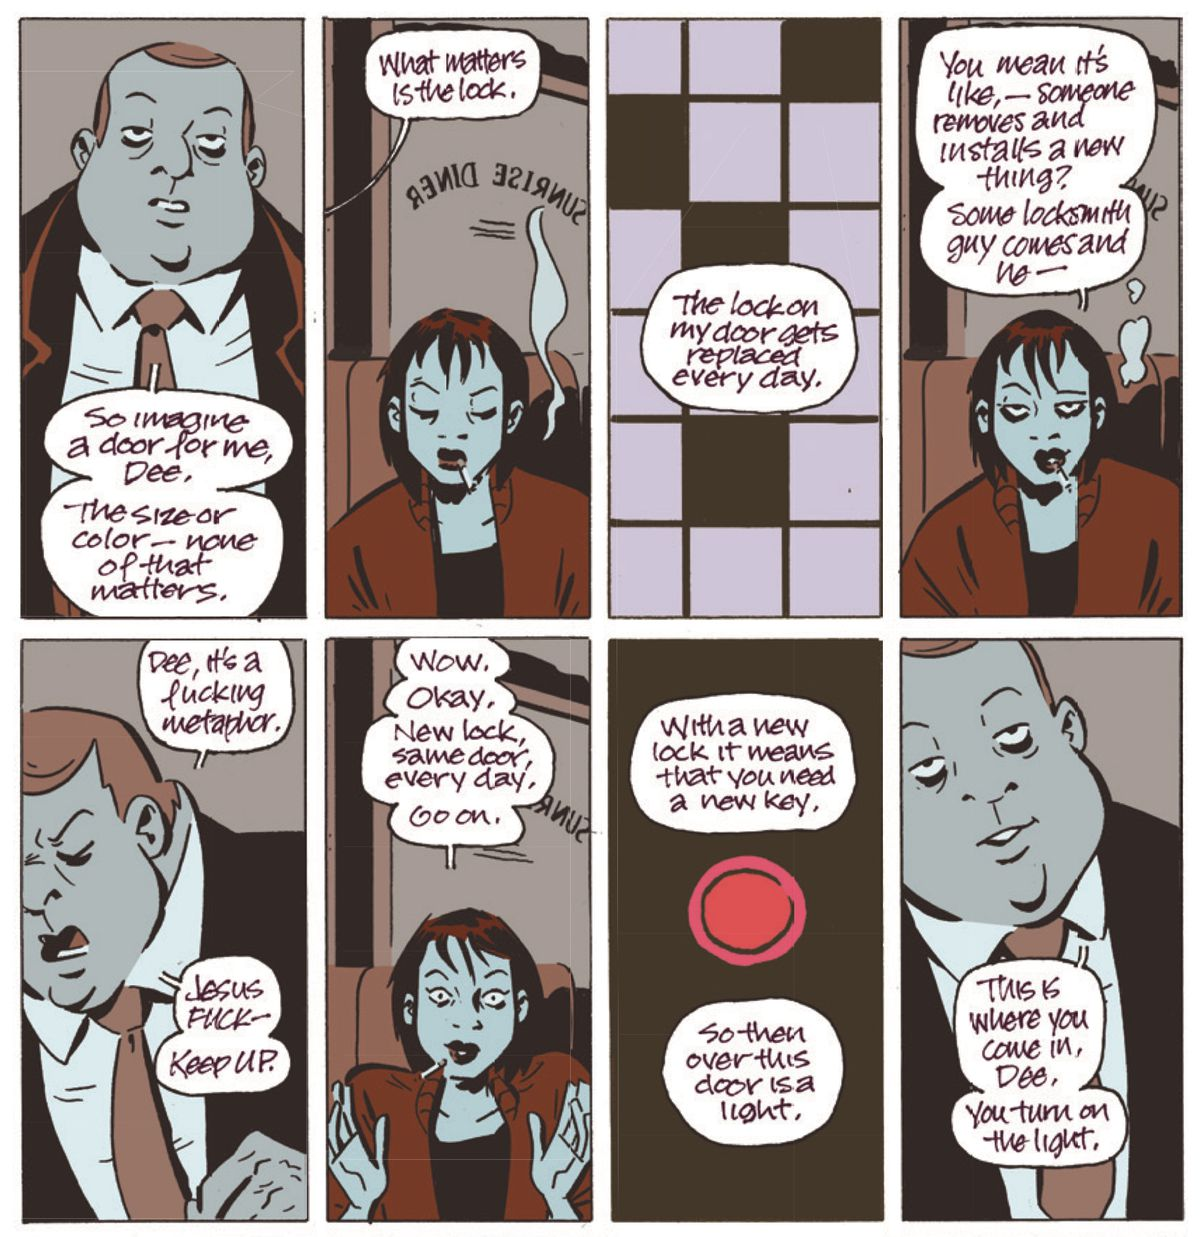 A strange man in a suit explains the strange and probably illegal job he needs Dee to do, in November Vol. 1: The Girl on the Roof/Image Comics.